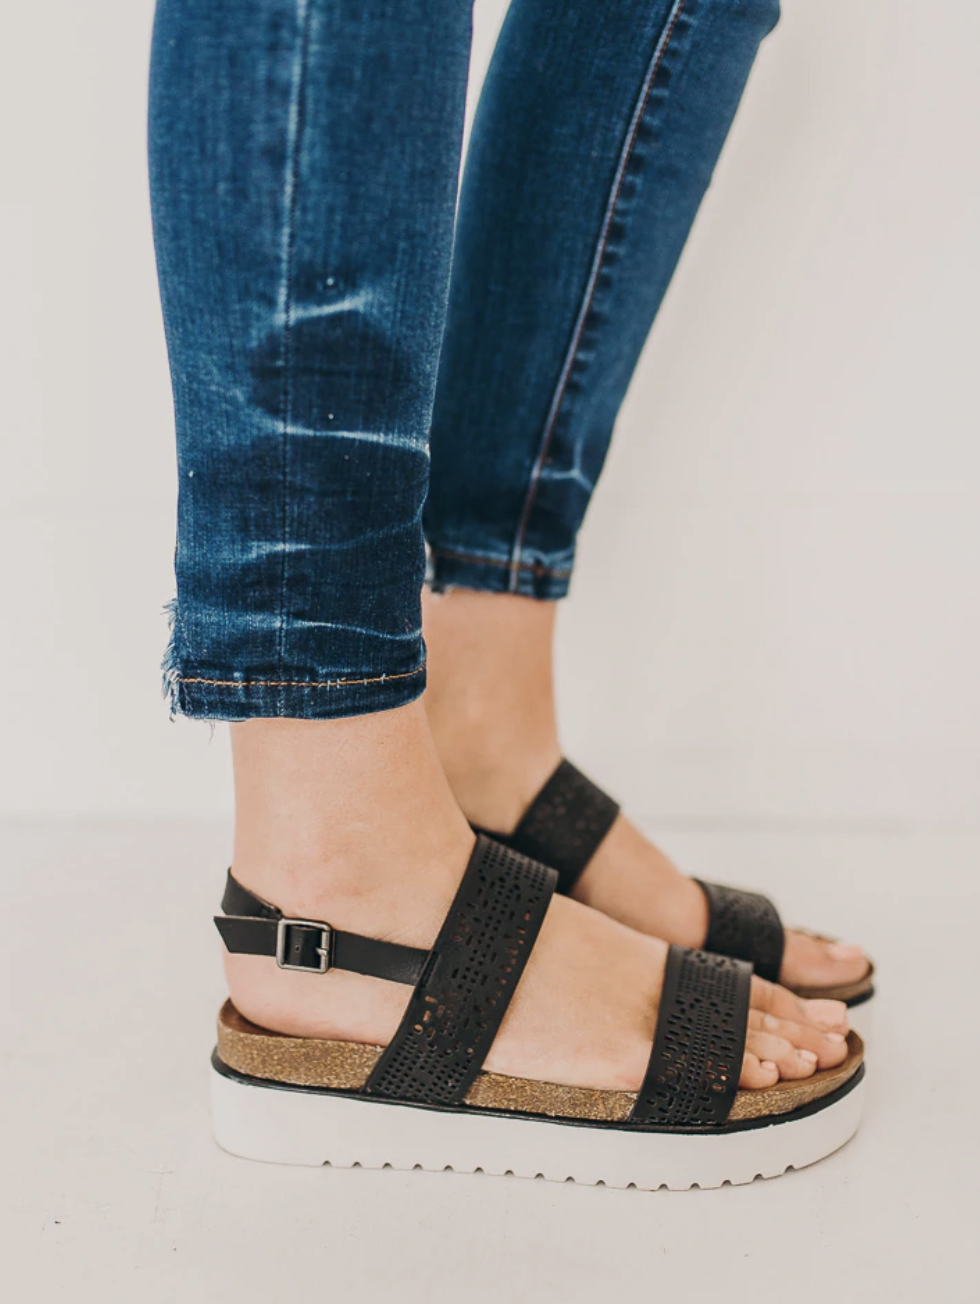 Open toed sandals with laser cut double band detail.